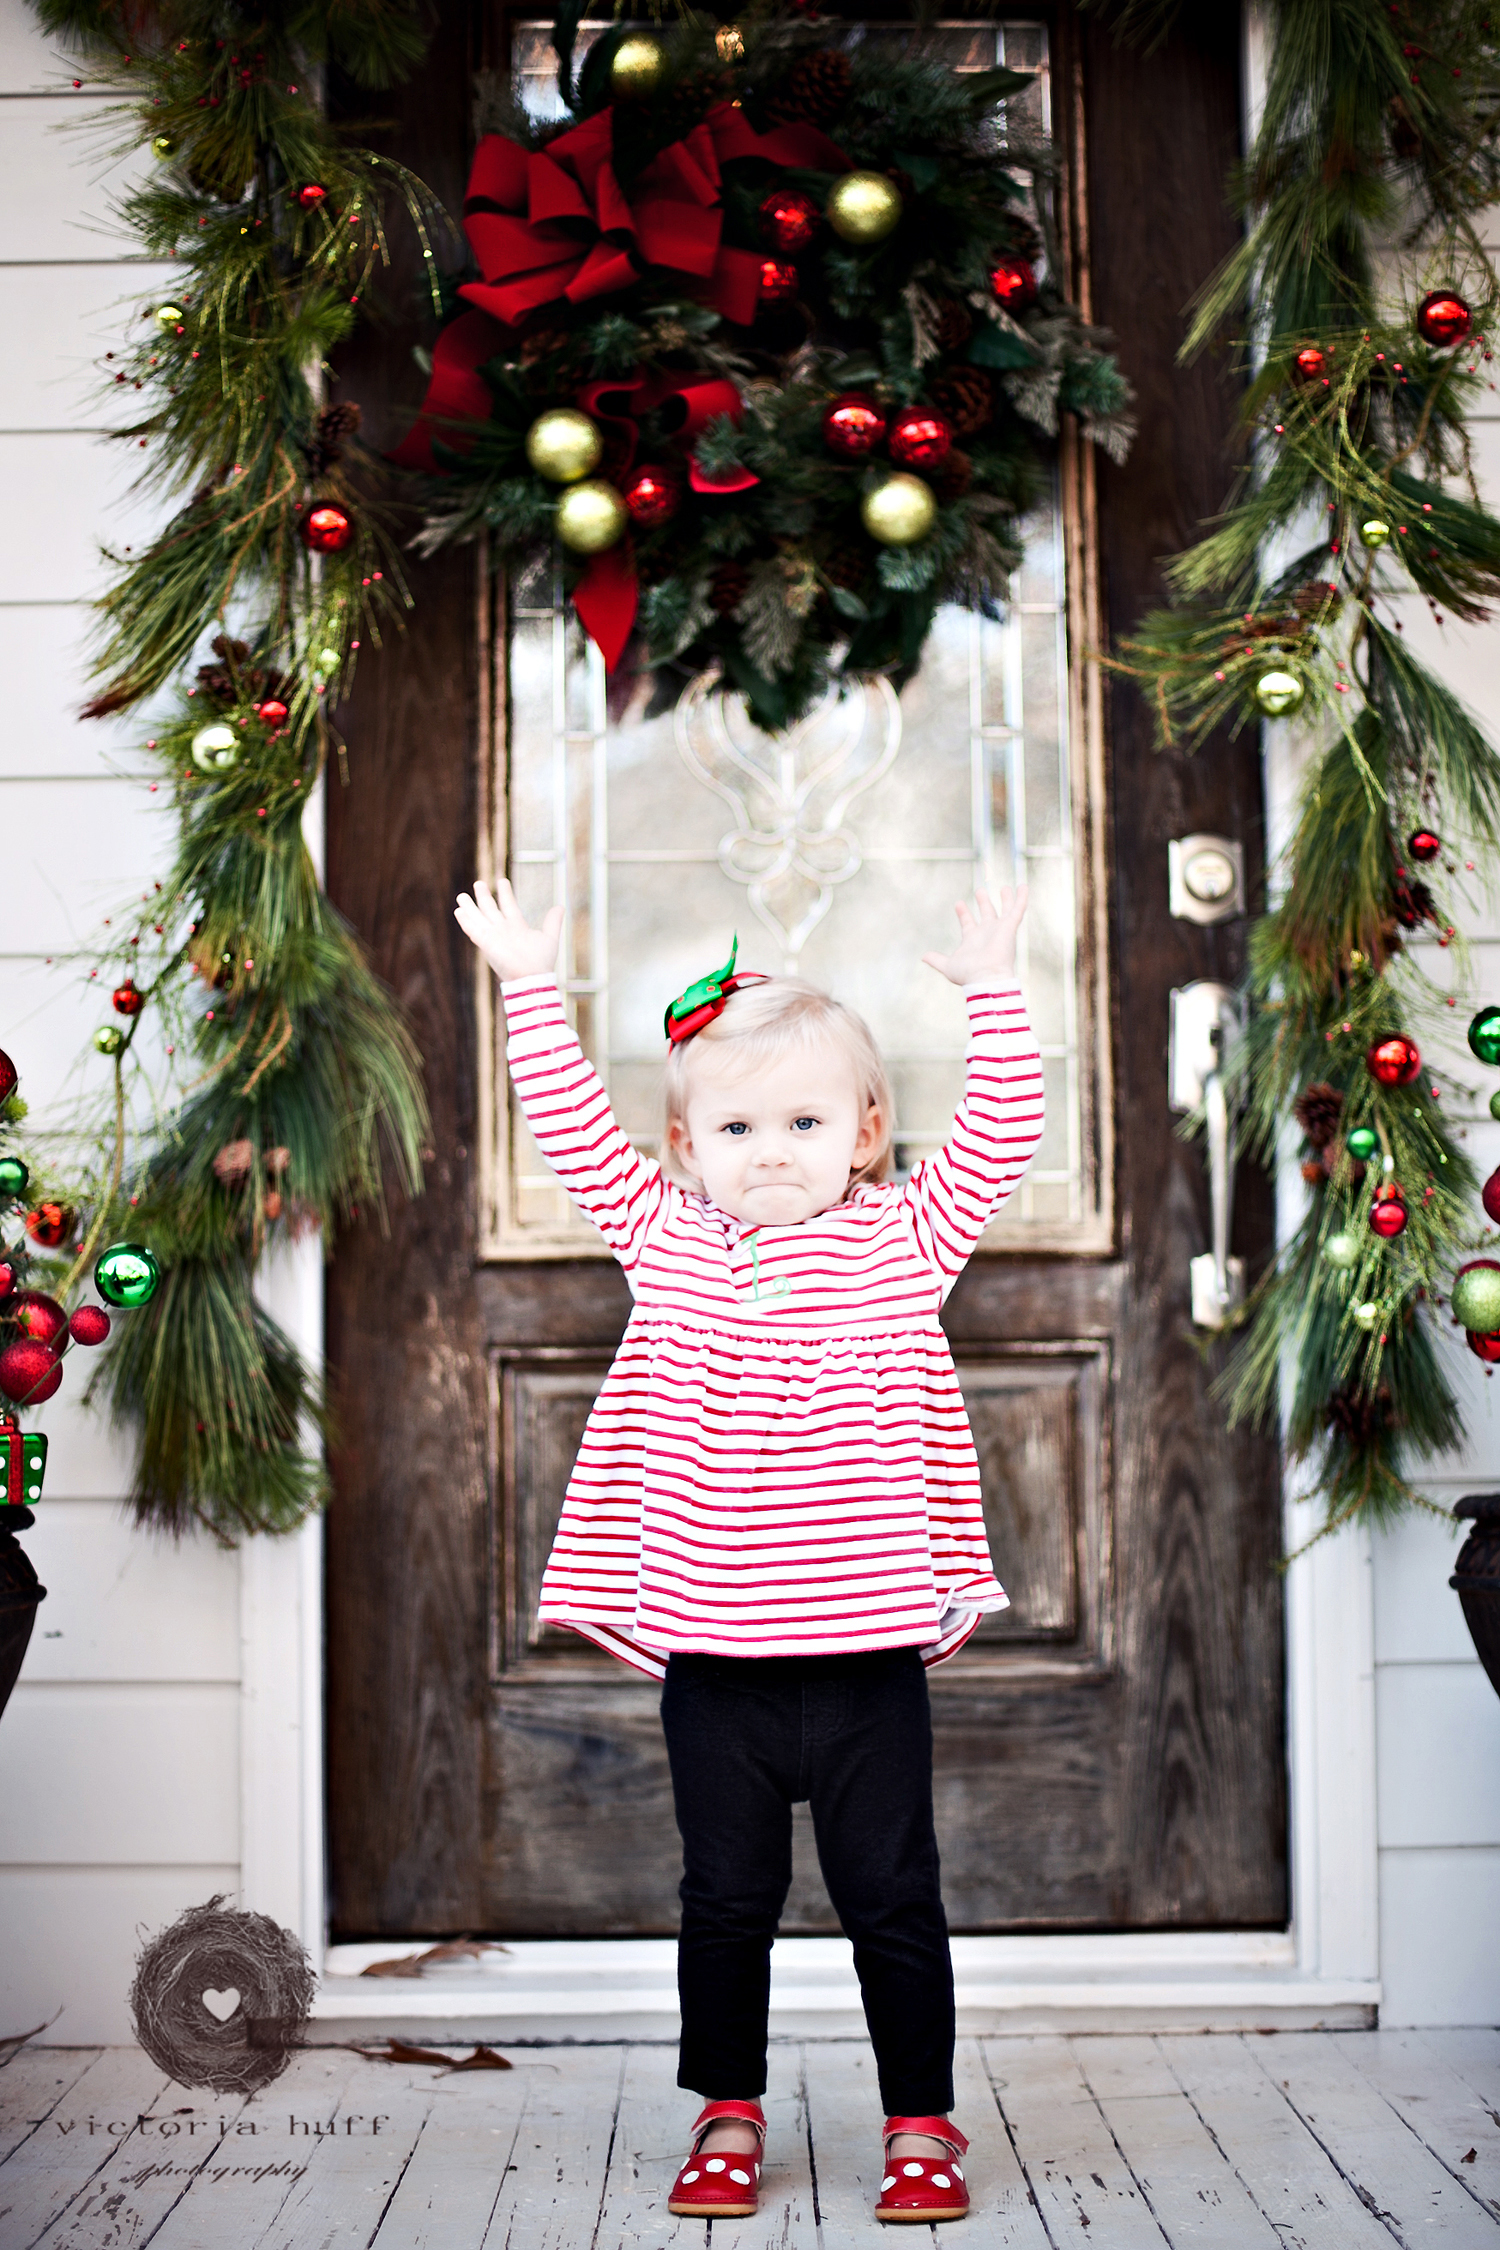 Christmas-Lowery-Infant-Toddler-Children-Photography-Athens-Georgia-Nashville-Tennessee-045.jpg